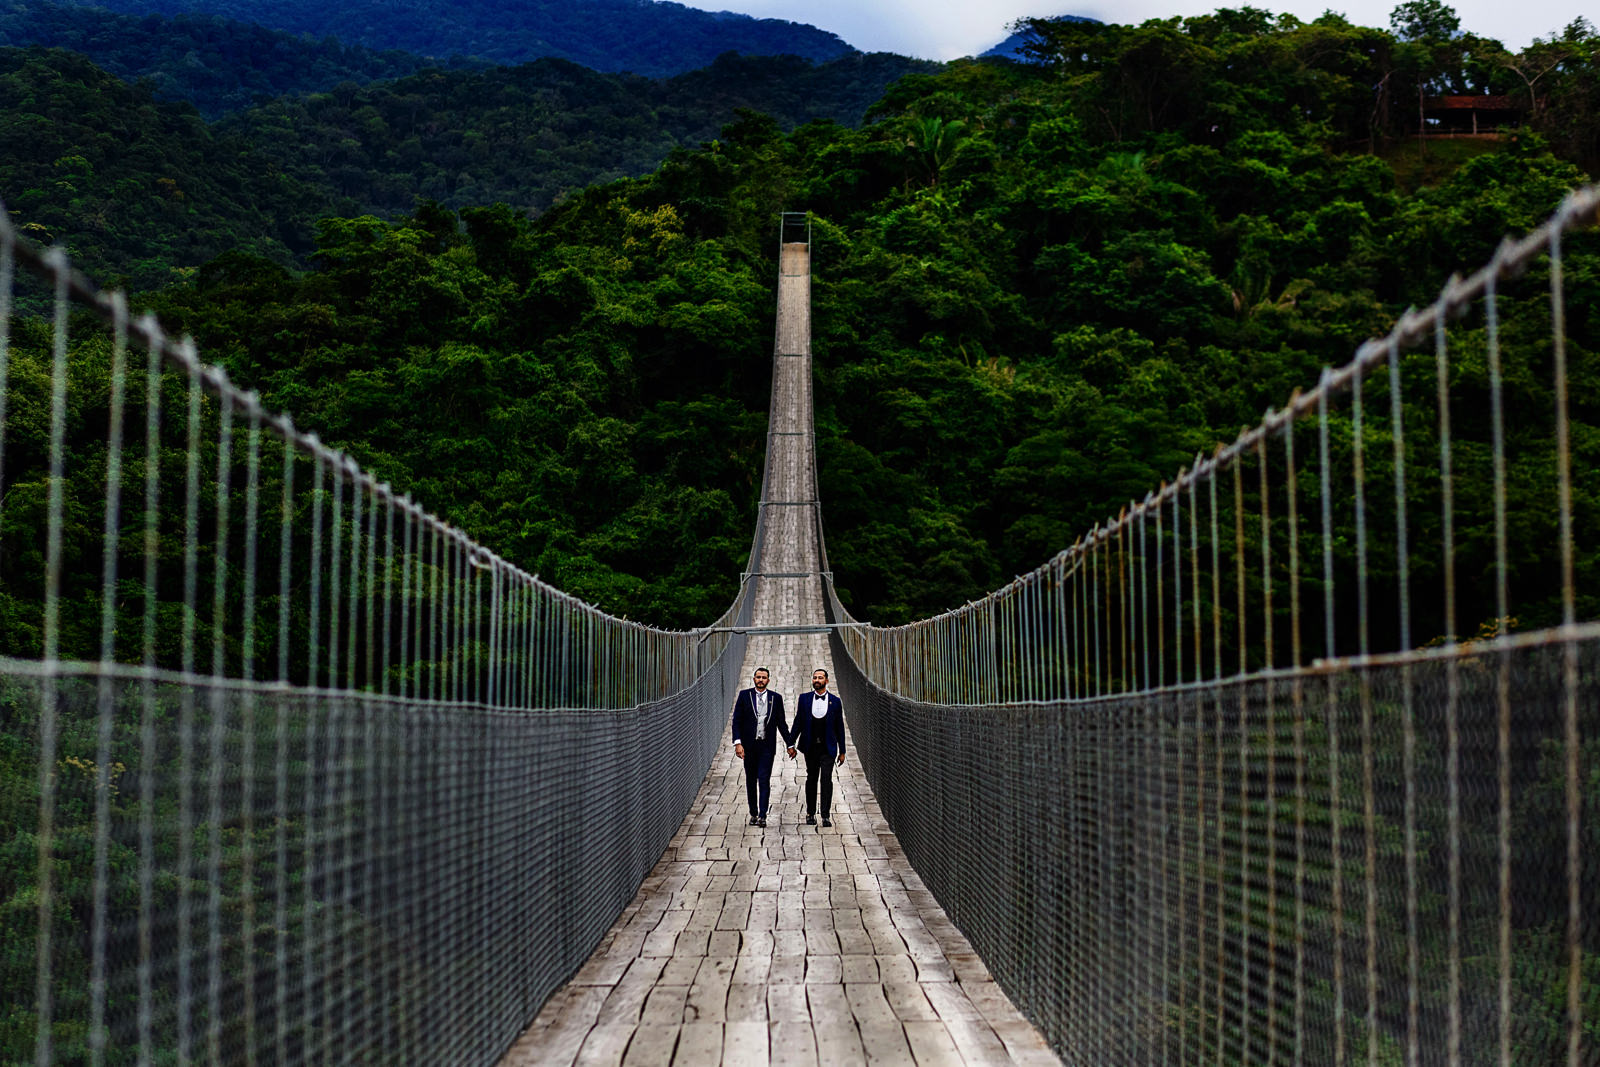 Gay couple walking over the Jorullo bridge between mountains at the Canopy River Park.